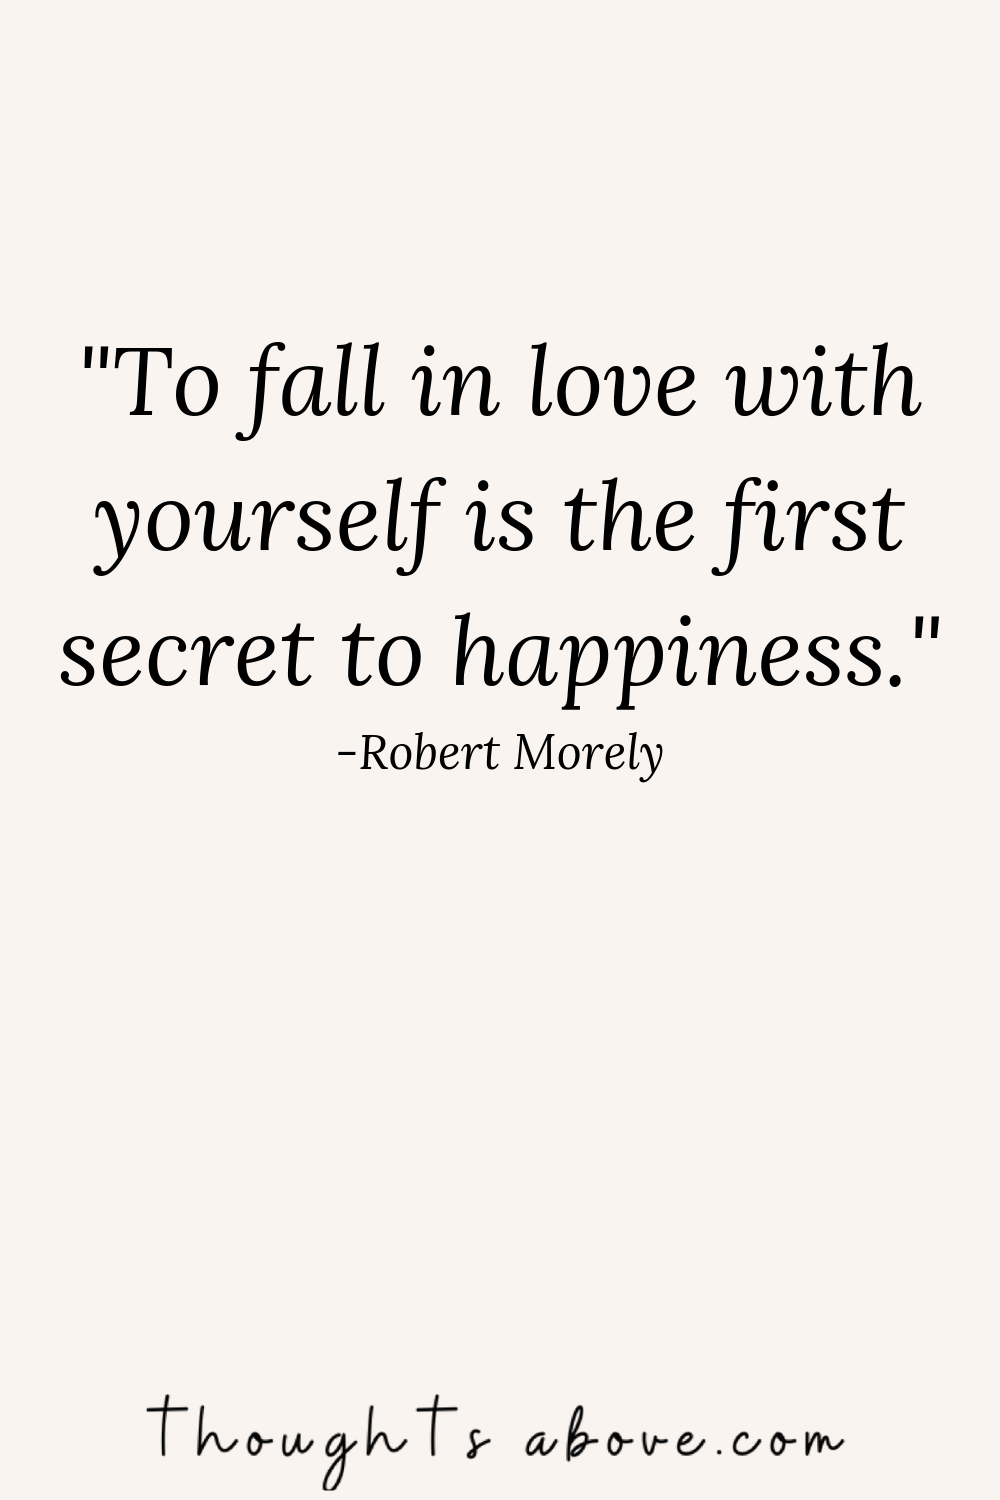 self love quotes ! yourself quotes life lessons 15 Best Inspirational Self-Love Quotes To Make You Love Yourself Even More - Thoughts Above